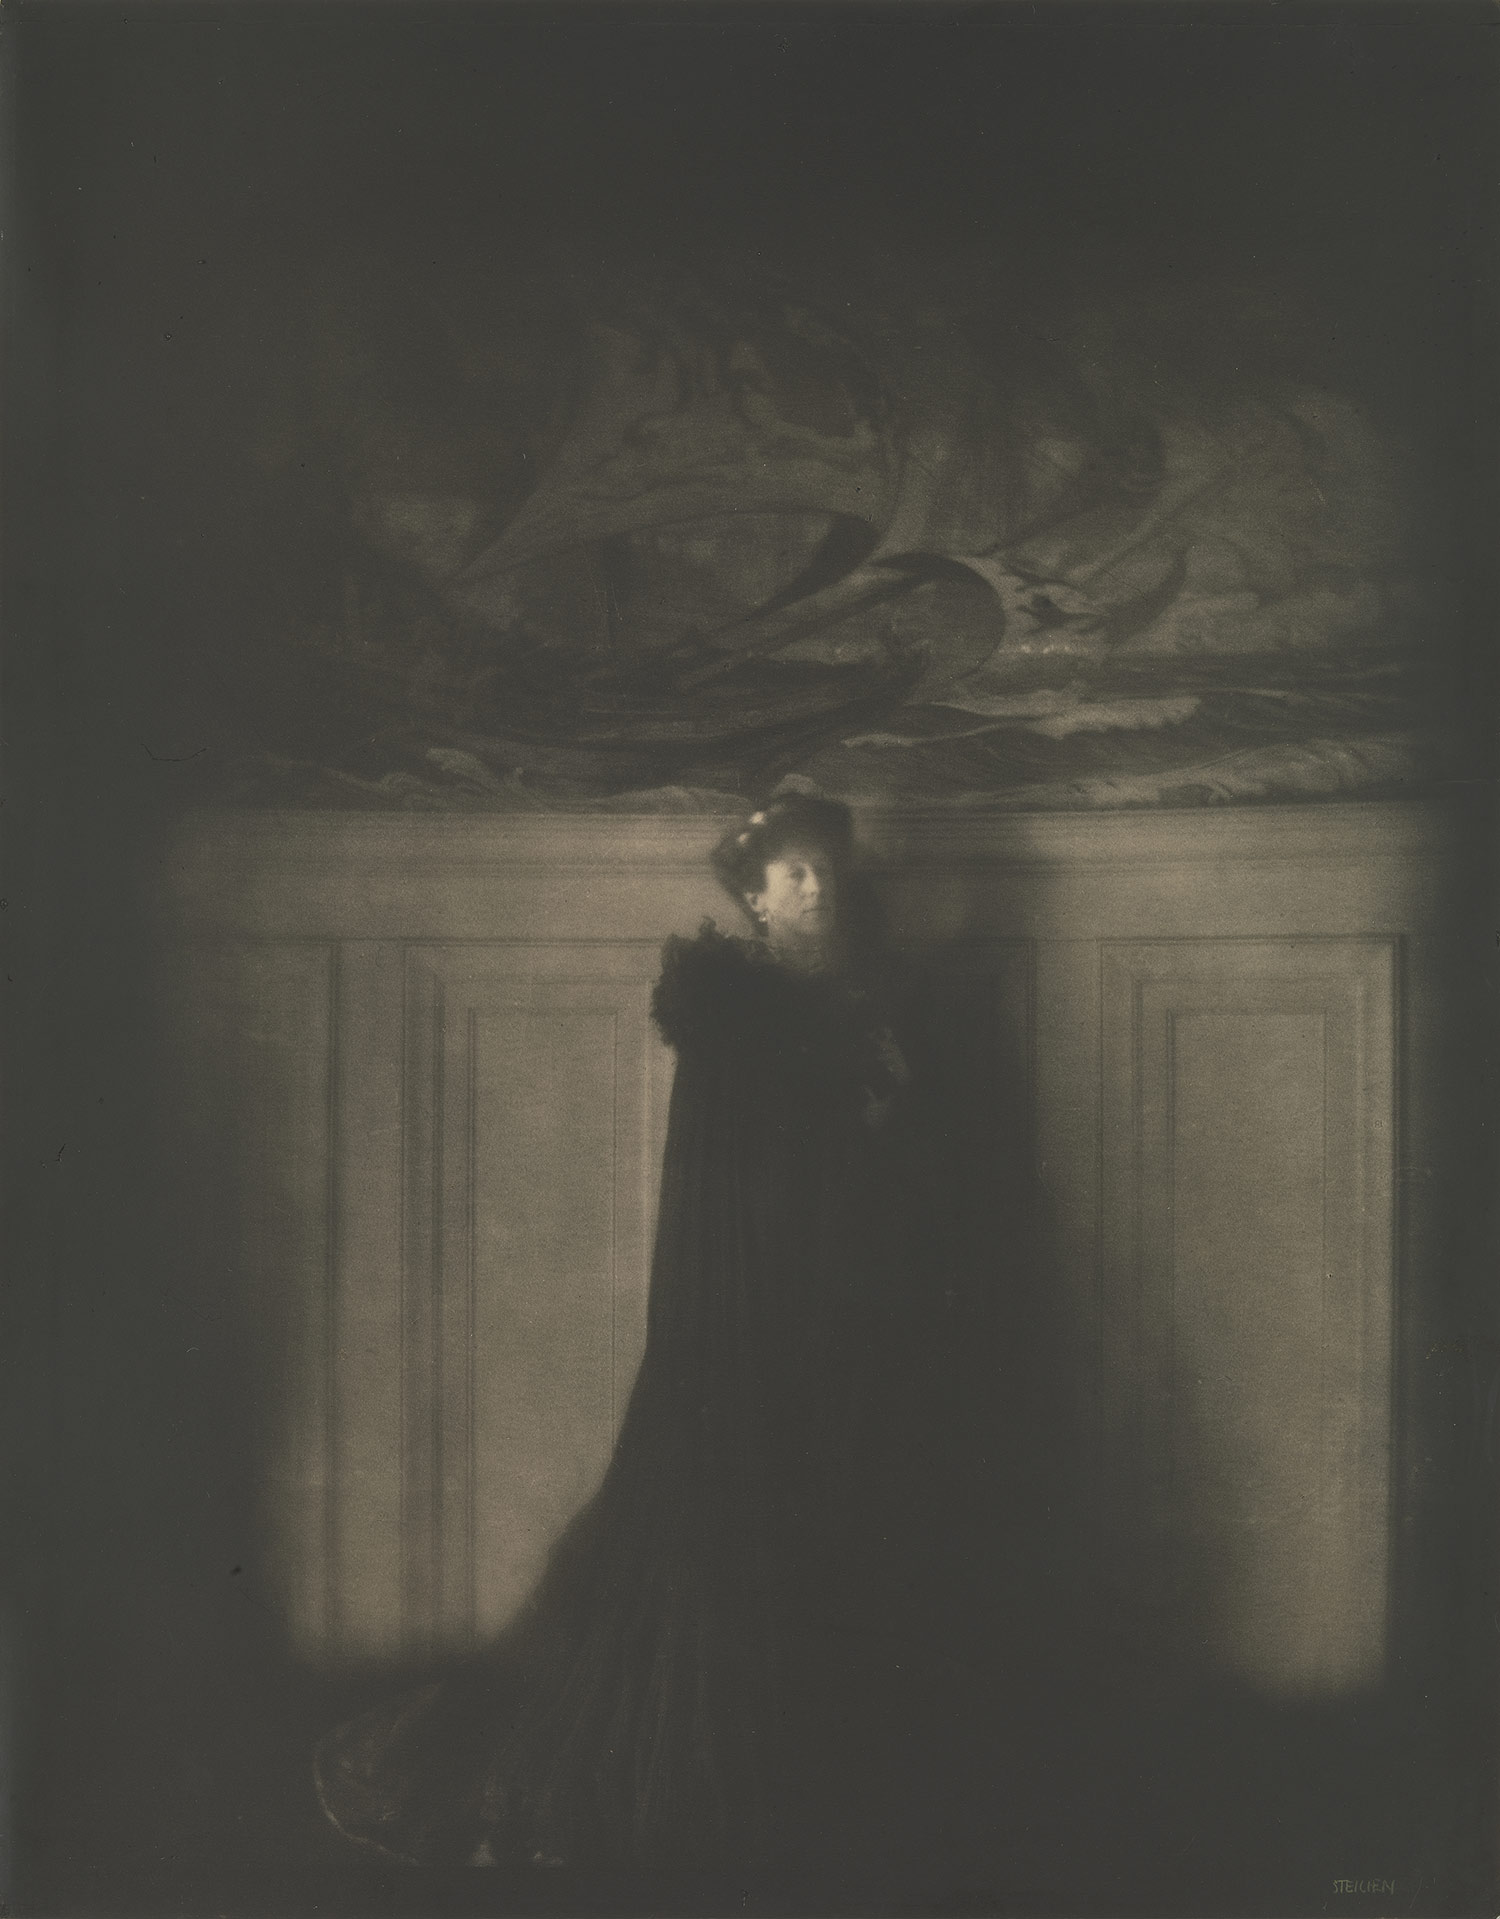 essays on edward steichen Edward steichen: in high fashion, the condé nast years, 1923-1937 (reprinted from the berkshire review for the arts)organized by the foundation for the exhibition of photography, minneapolis, and the musée de élysée, lausanne, switzerland.